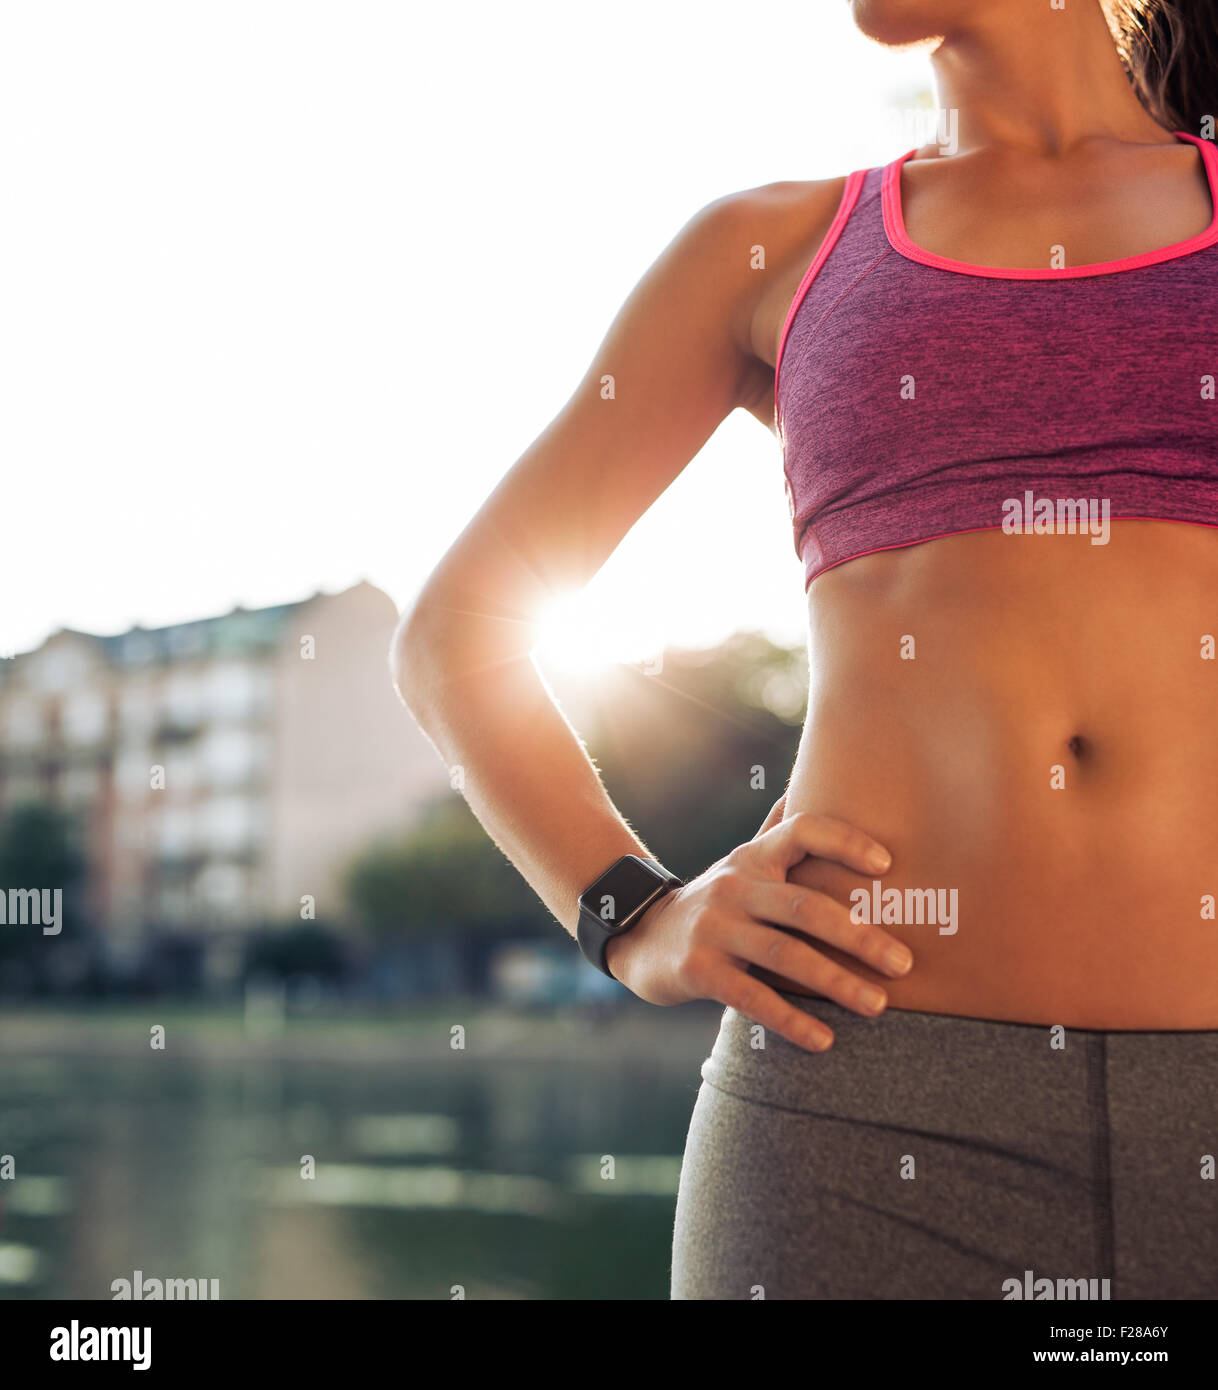 Close up shot of fitness model torso, she is wearing smartwatch standing with her hands on hips. Female athlete - Stock Image